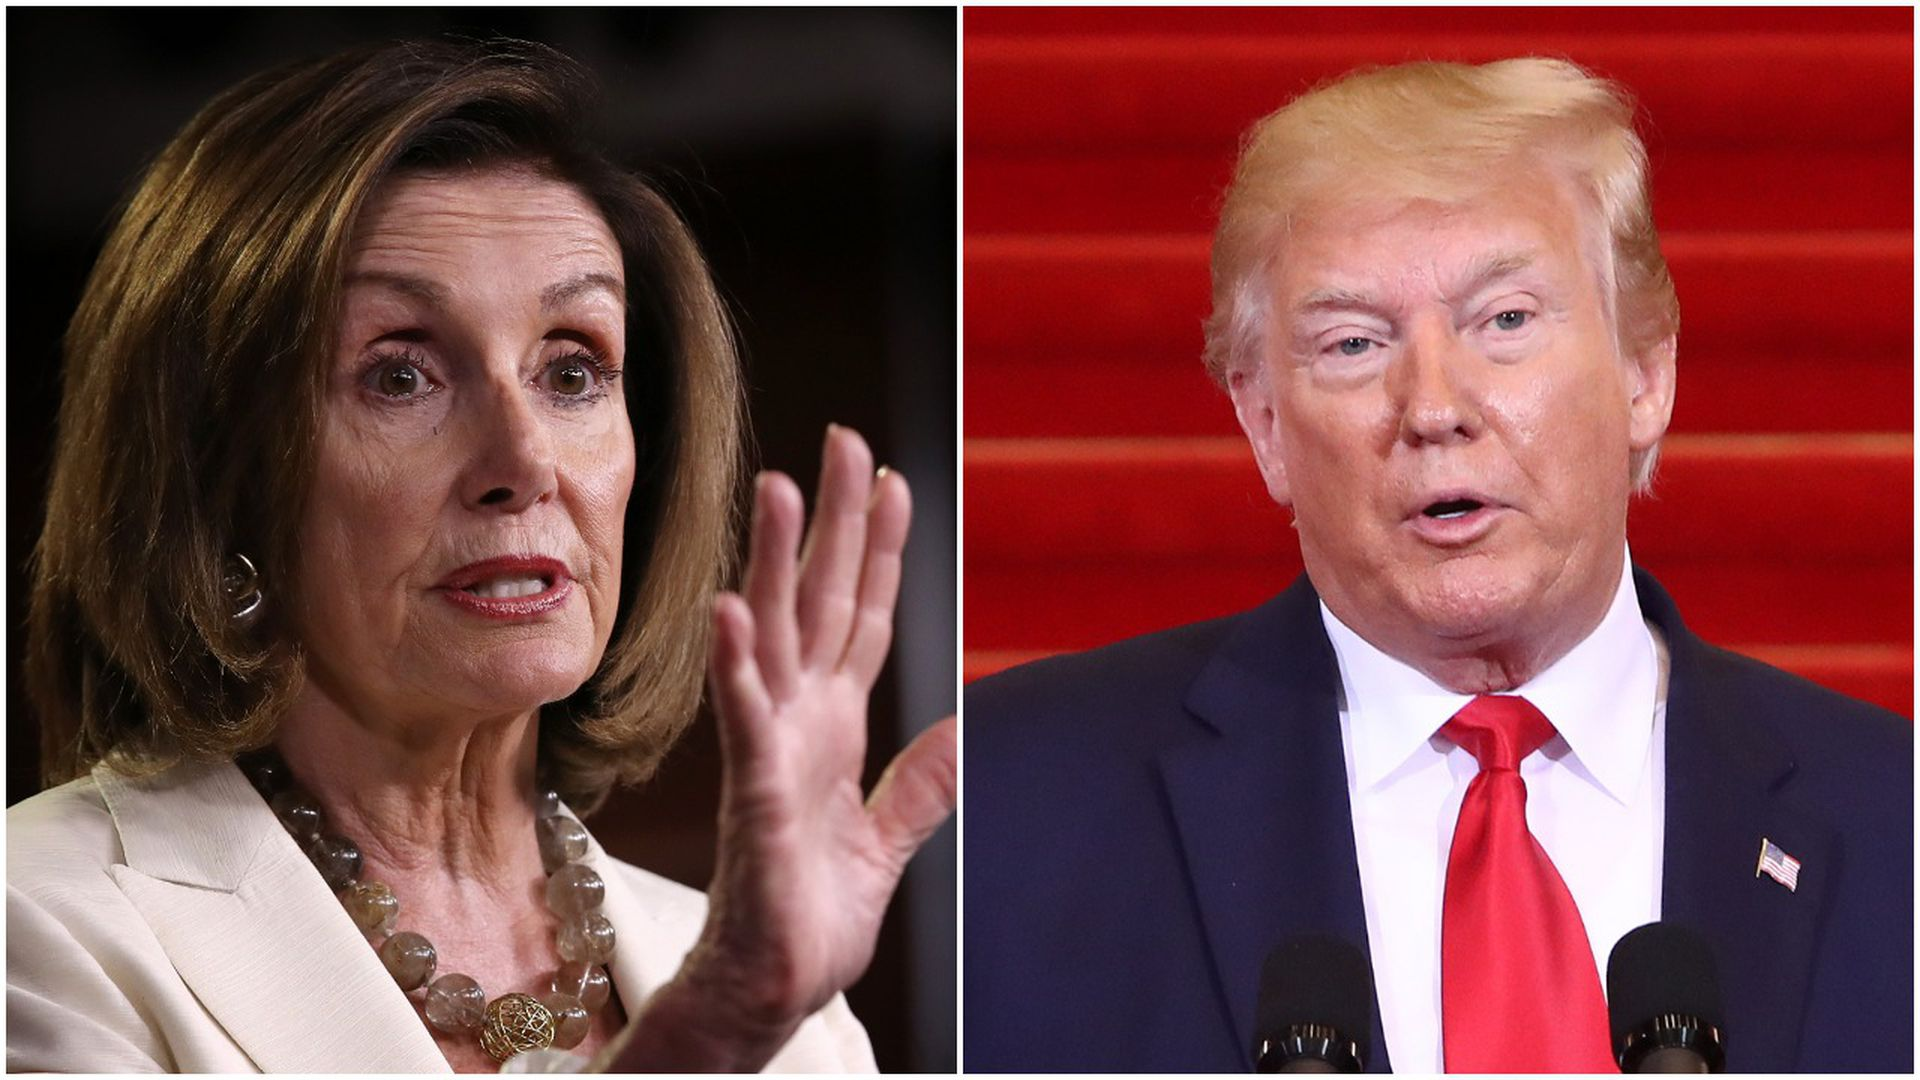 House Democrats condemn Trump's racist tweets